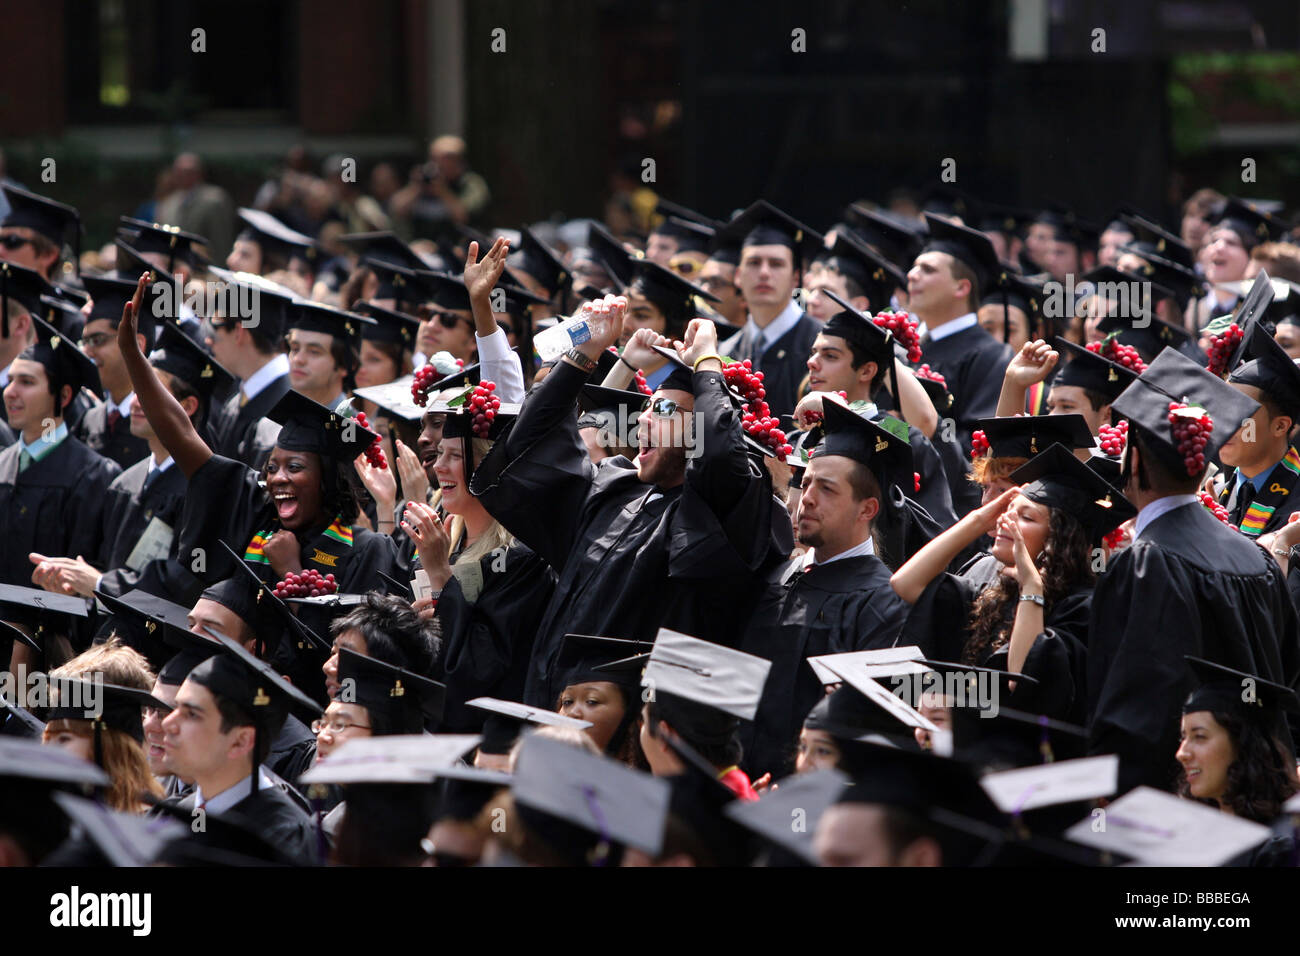 Yale University graduates cheer as they receive their degrees at Yale Commencement Ceremonies - Stock Image